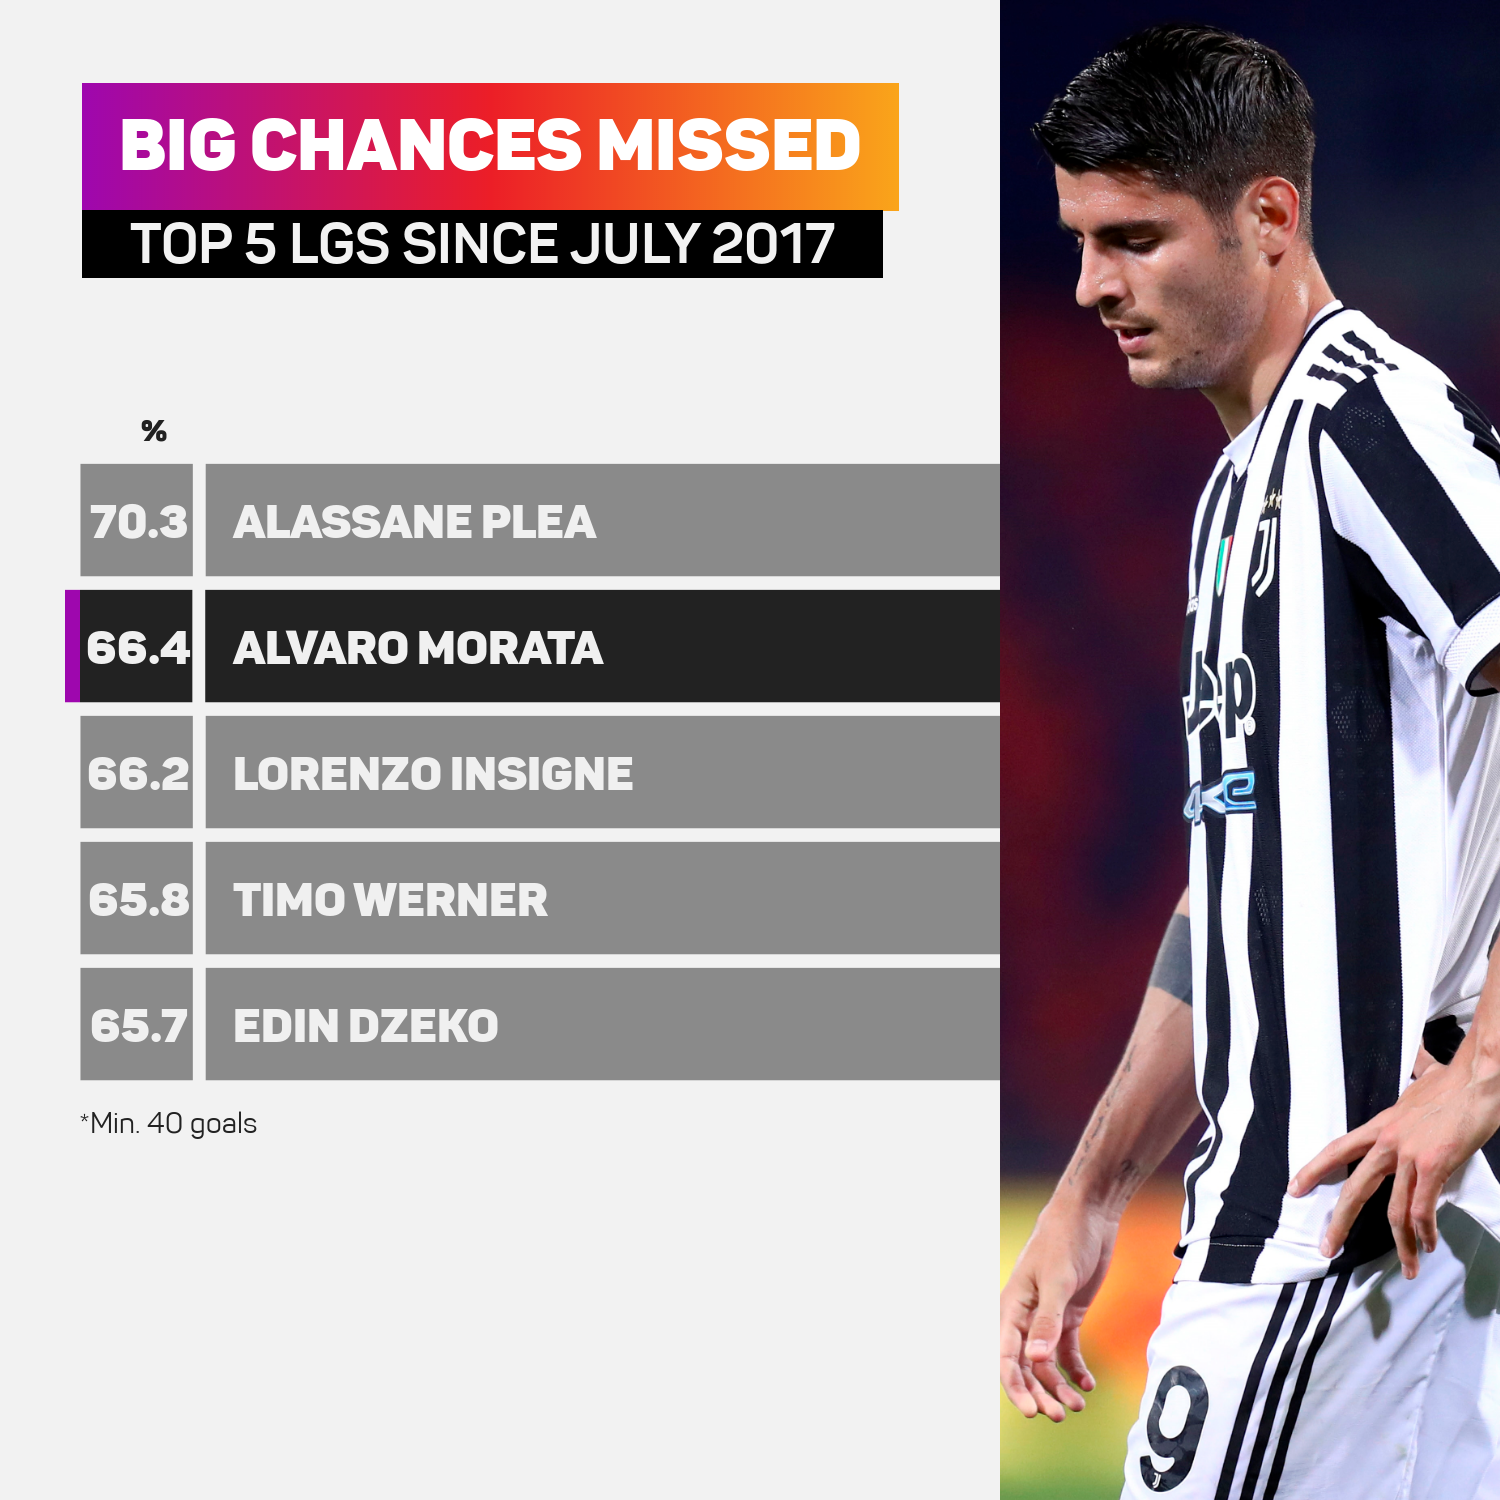 Only one player (min. 40 goals) has missed more of his big chances since July 2017 across the top five leagues than Morata